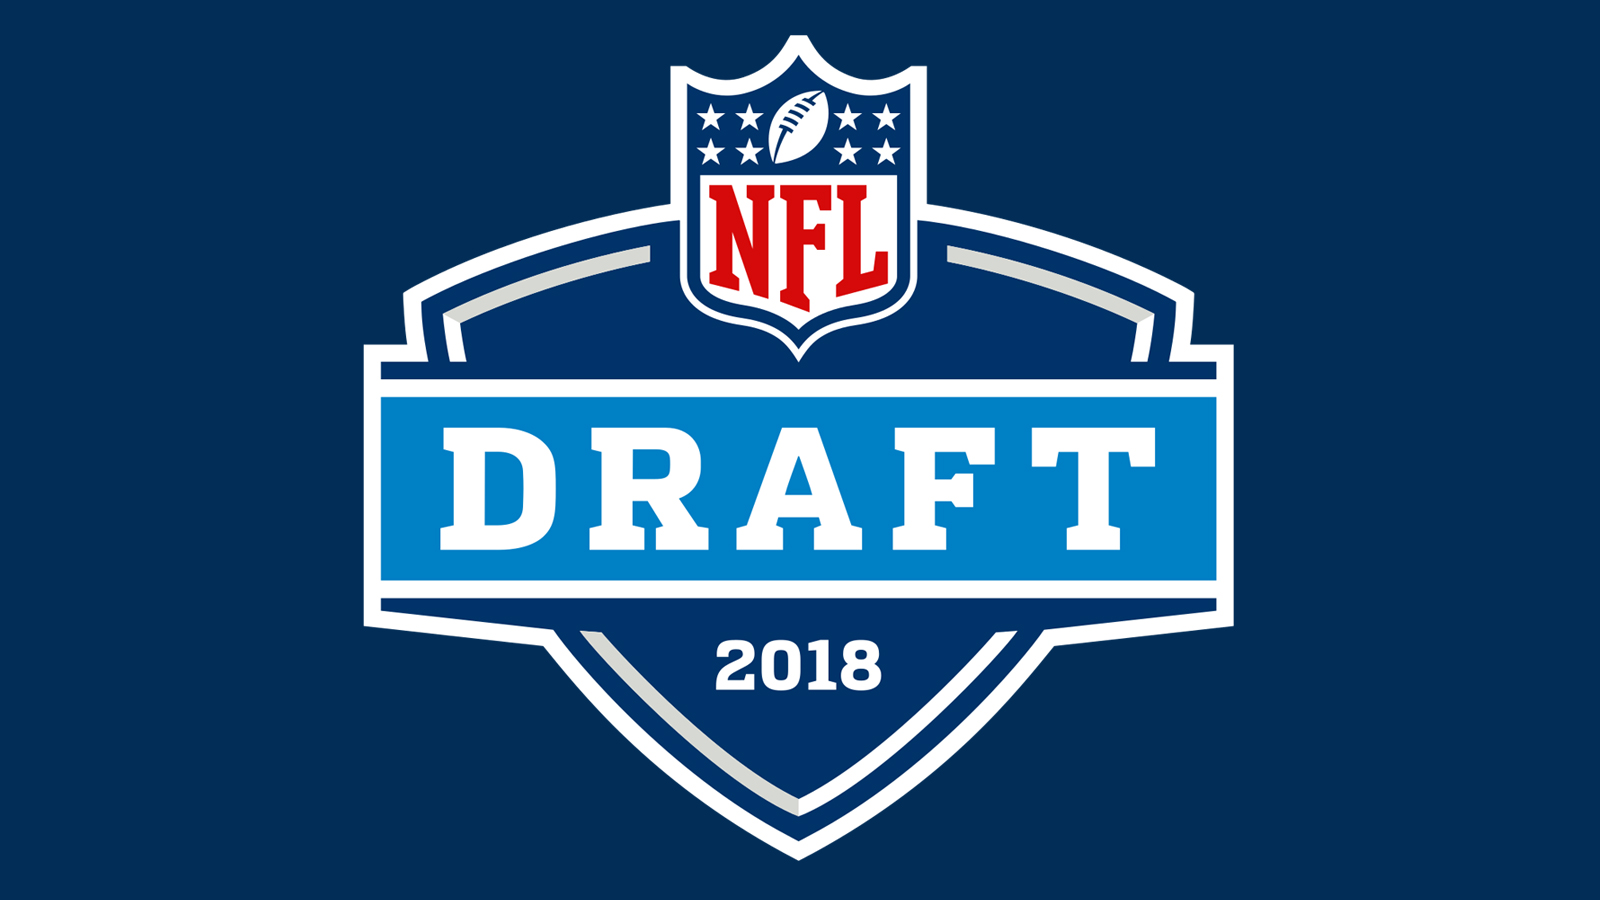 2018 NFL Draft Central - University of Michigan Athletics 1737af760a